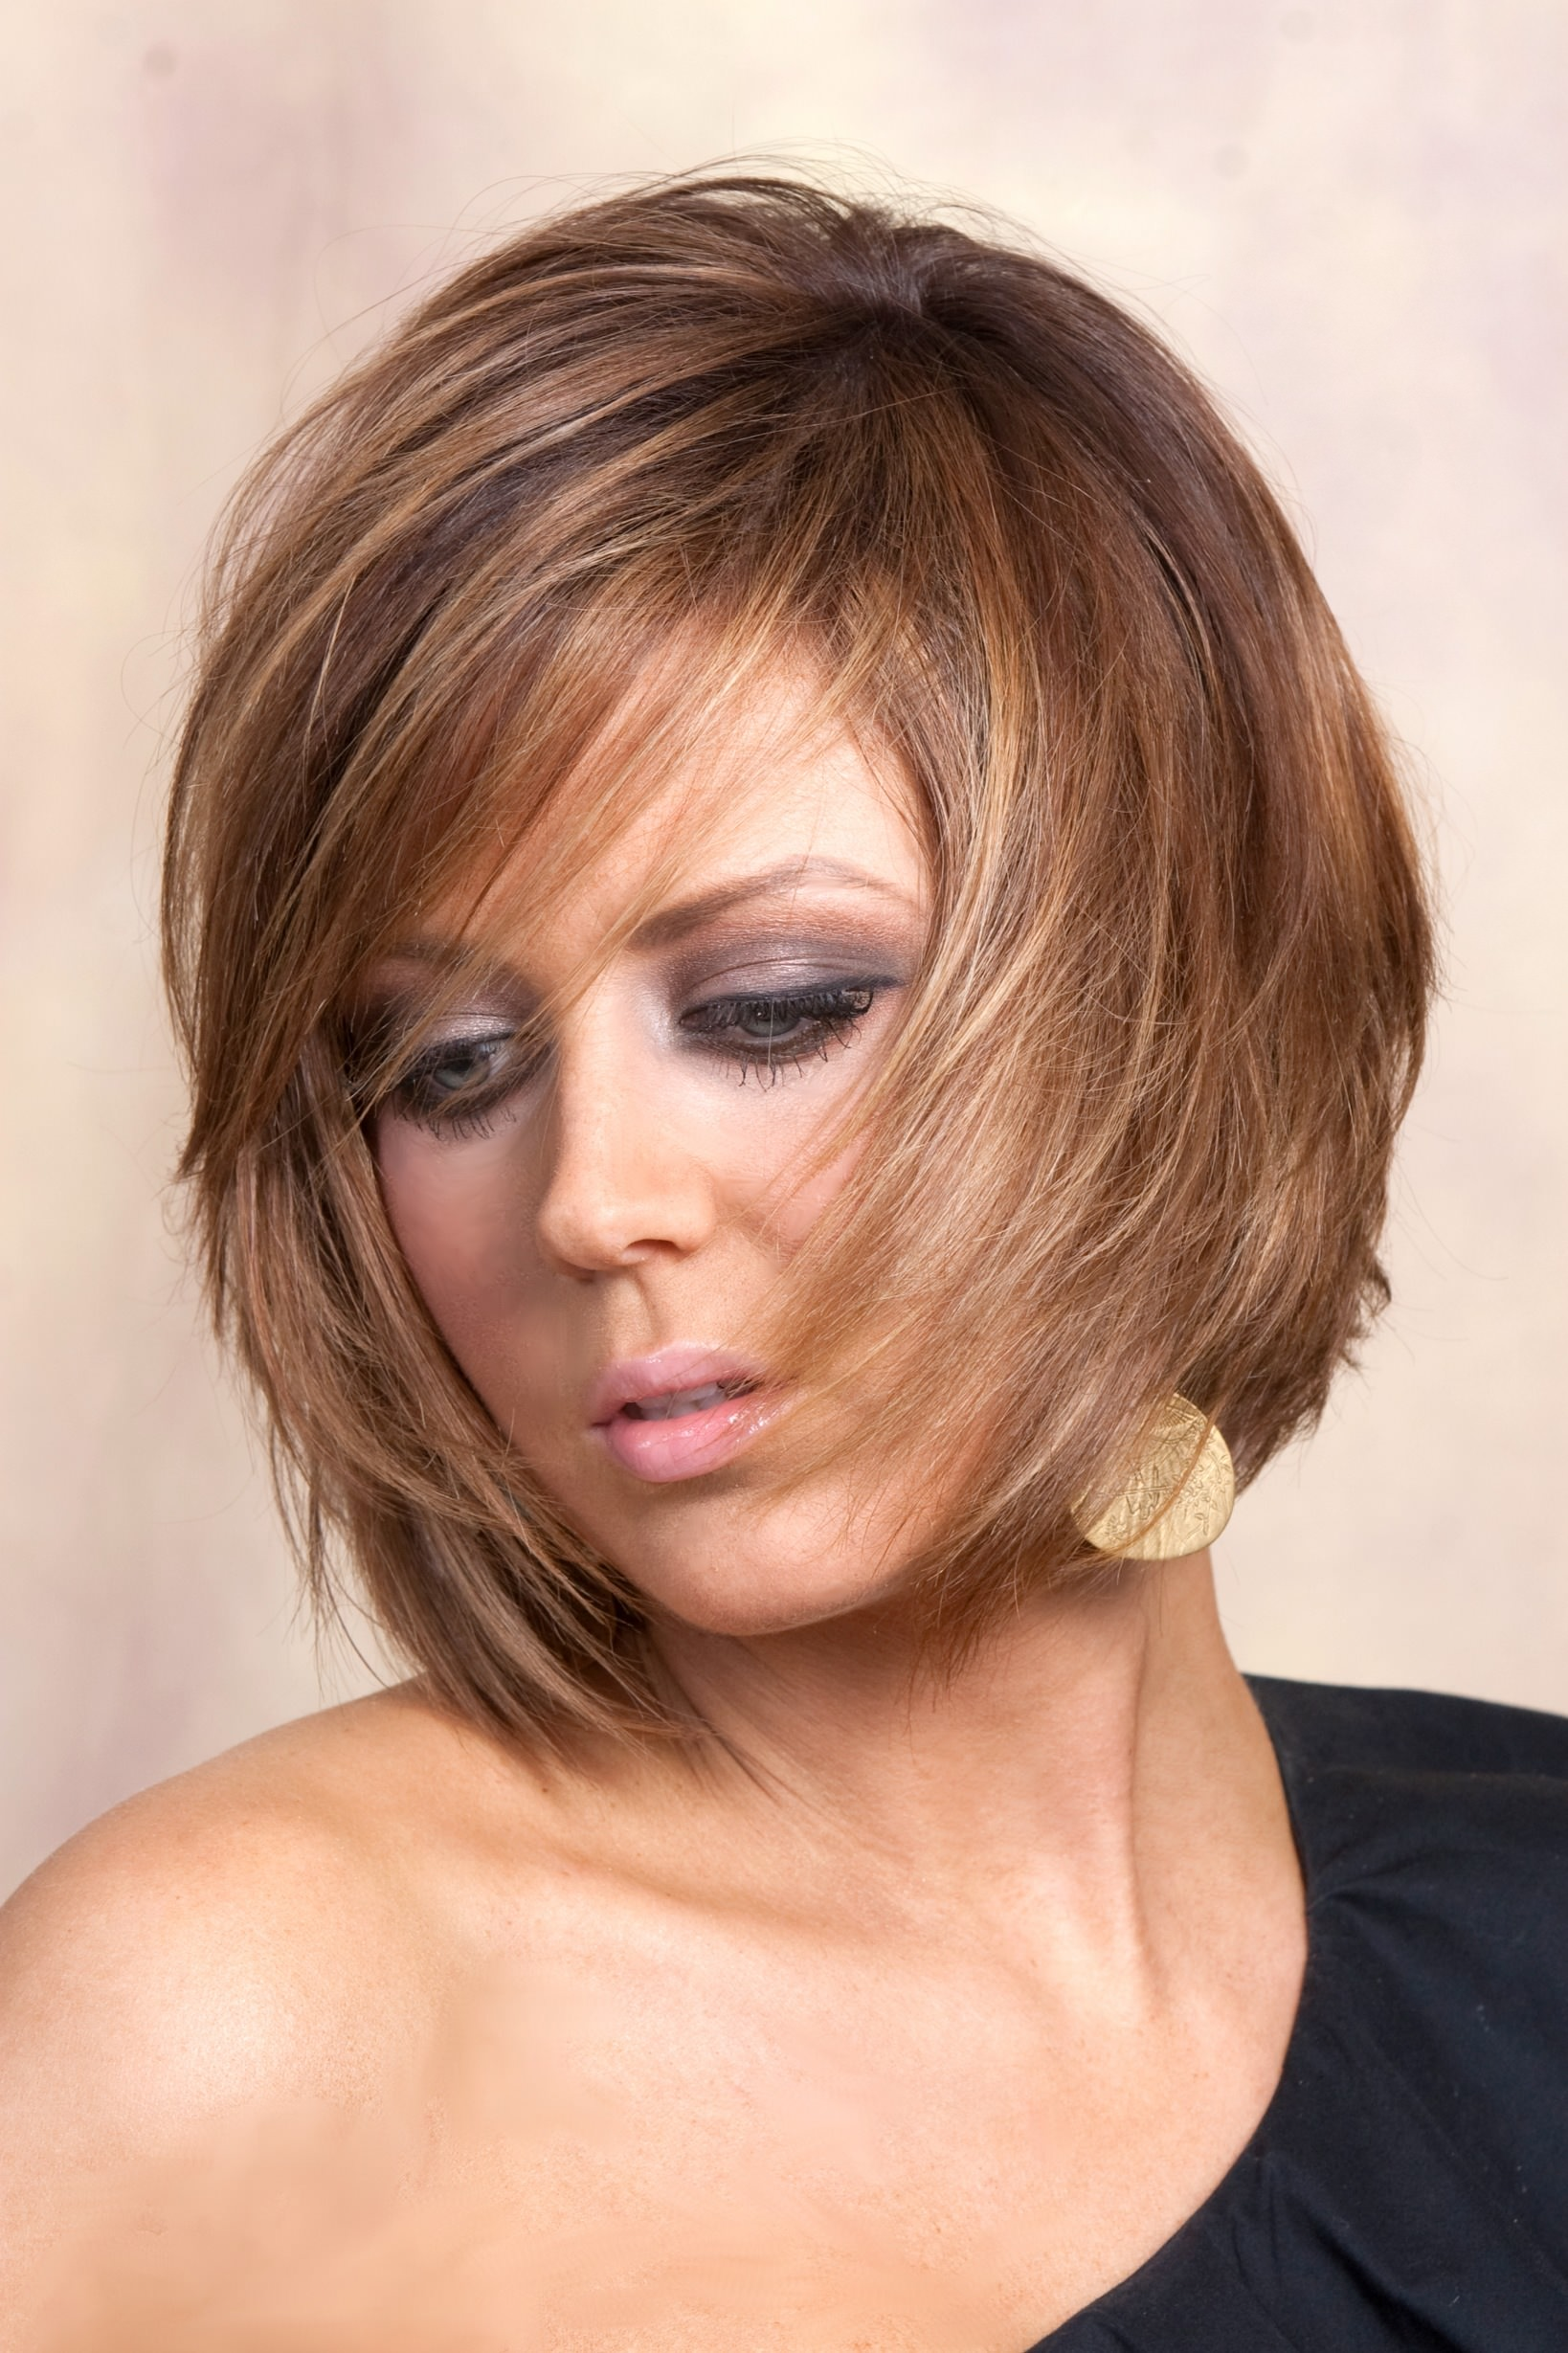 25 Layered Bob Haircut Ideas Designs Hairstyles Design Trends